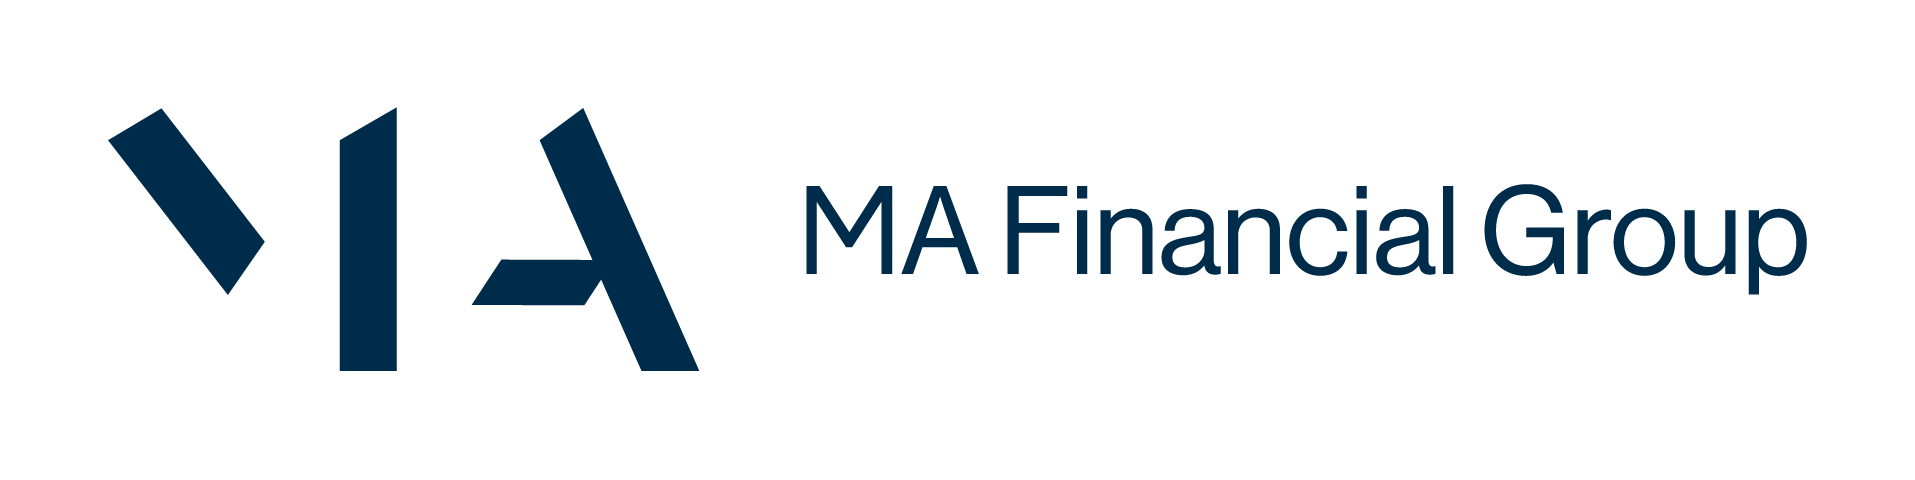 MA Financial Group Investment Banking/ Corporate Advisory Summer Analyst Progam 2021/22